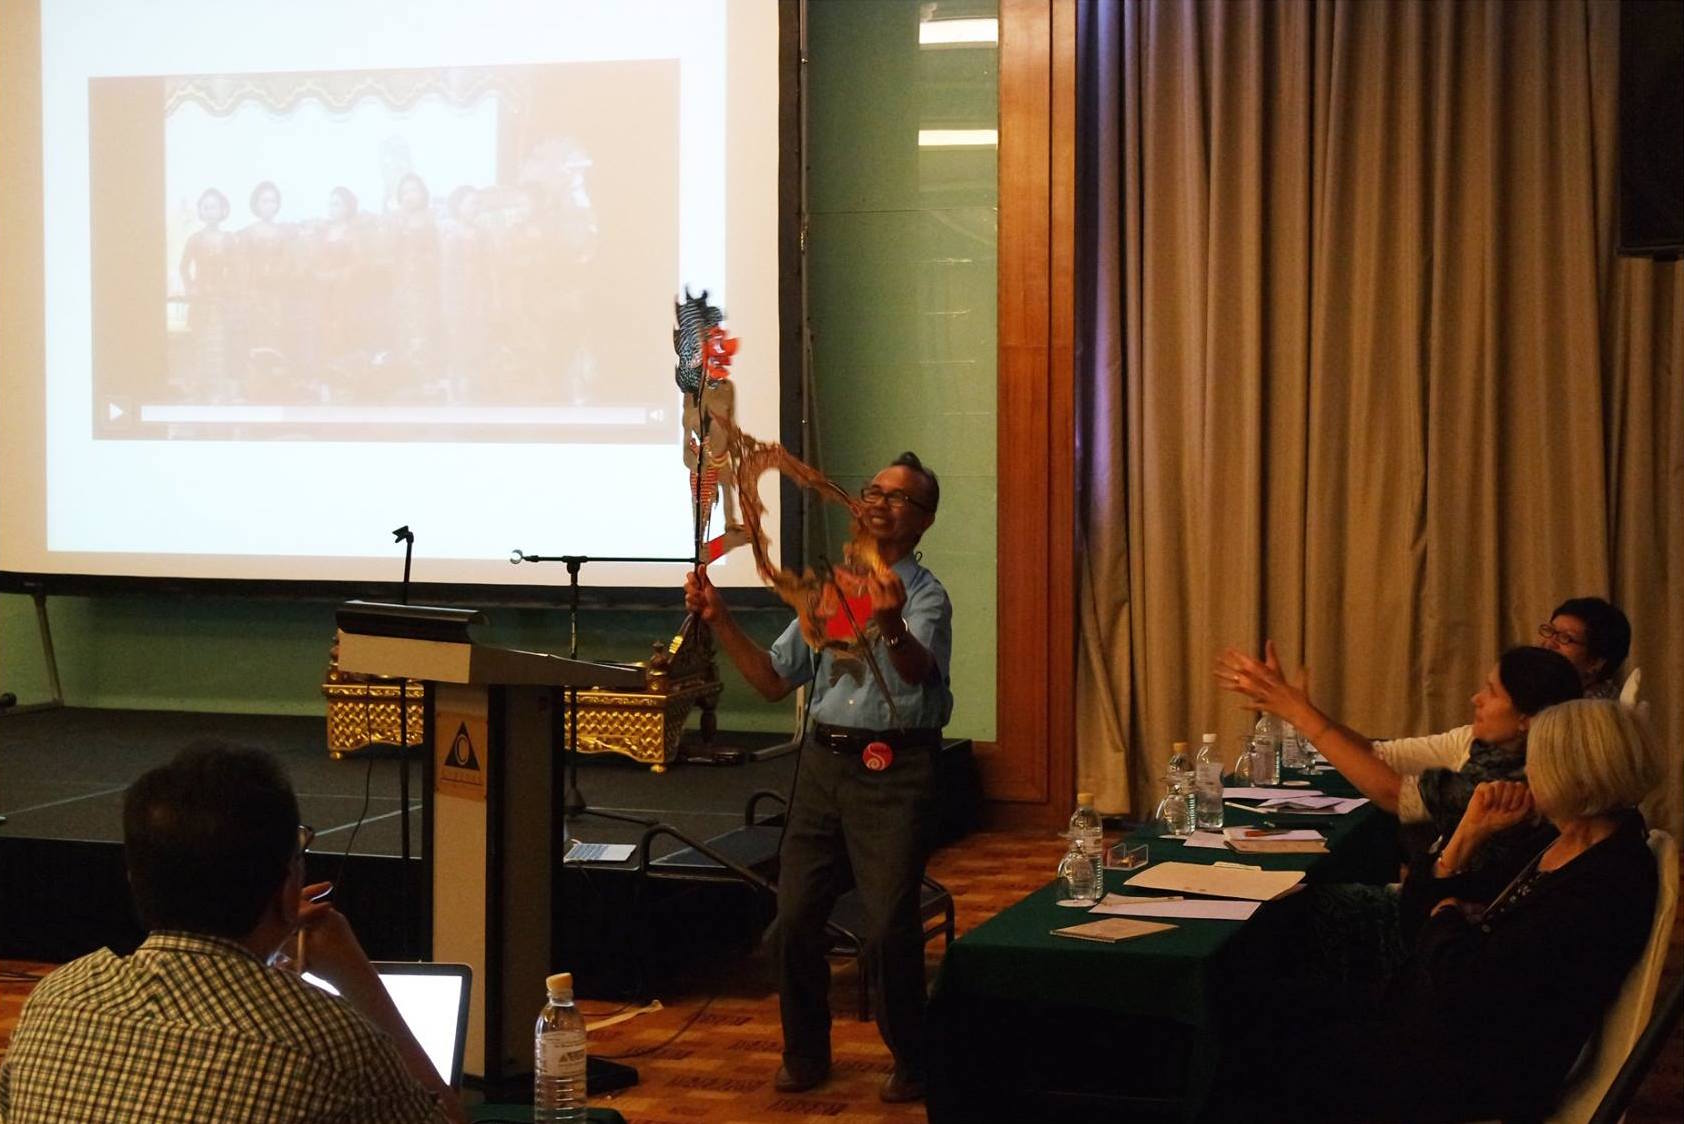 University Professor of Music Sumarsam demonstrated puppet movements at the 4th Symposium of the International Council for Traditional Music Study Group on the Performing Arts of Southeast Asia (ICTM PASEA), in Penang, Malaysia.